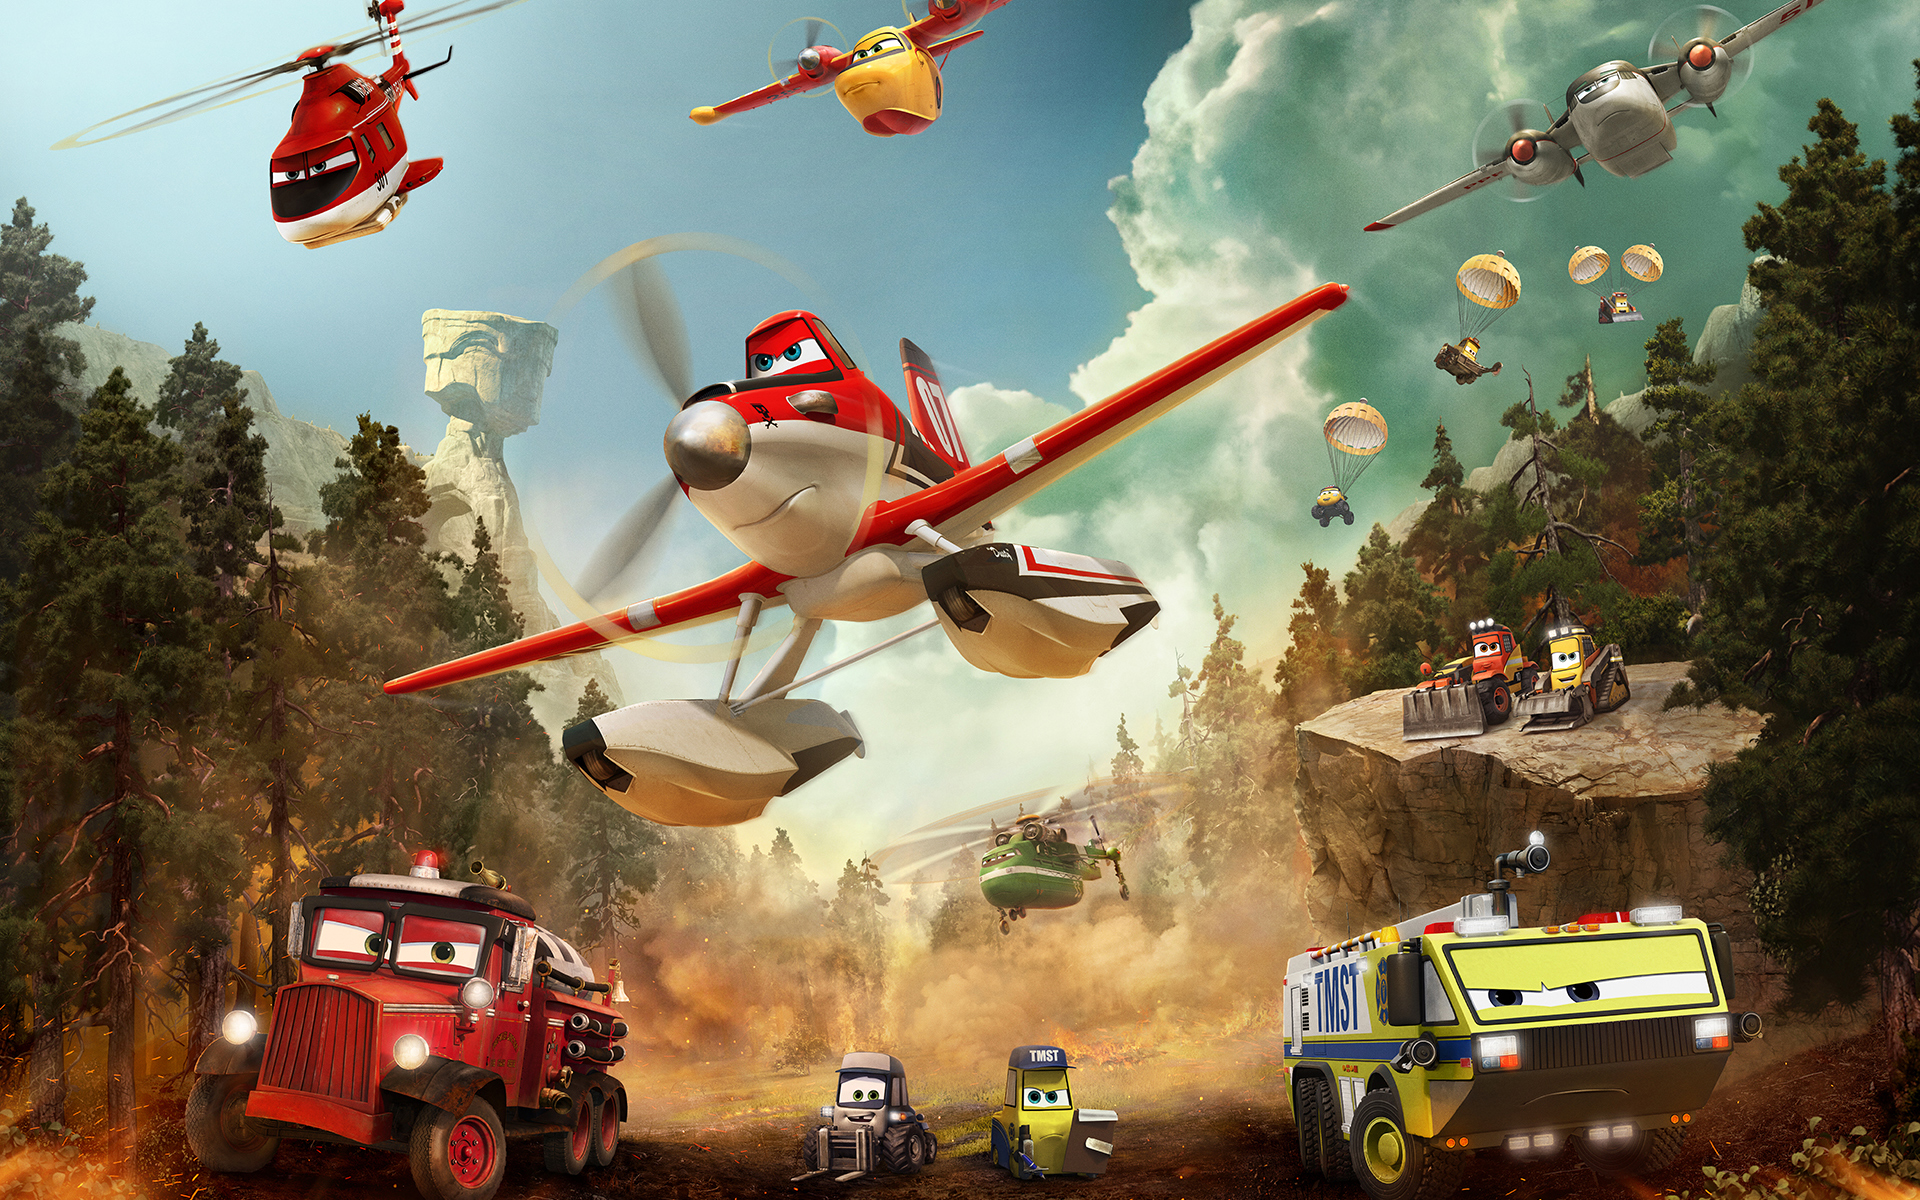 Planes Fire and Rescue Wallpaper HD